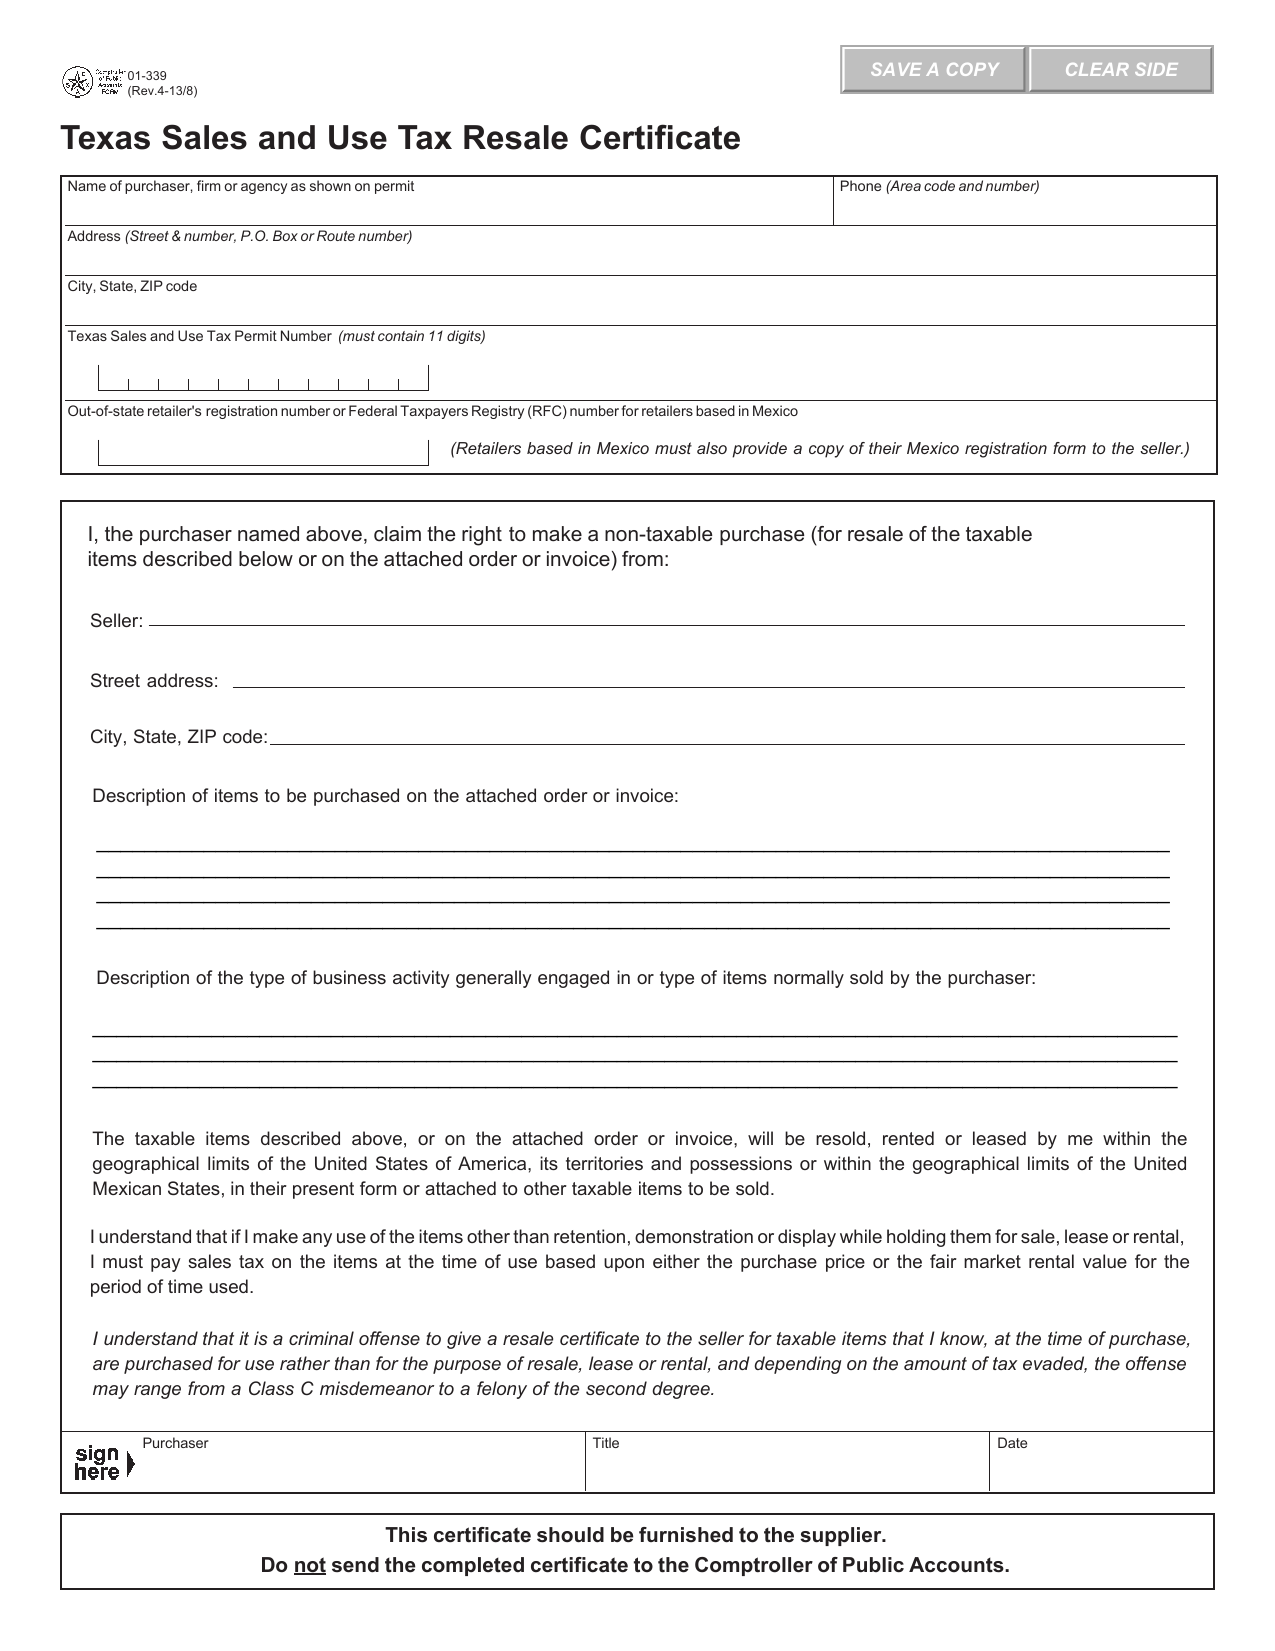 Texas Sales And Use Tax Exemption Certificate Form 01 339 Ibov